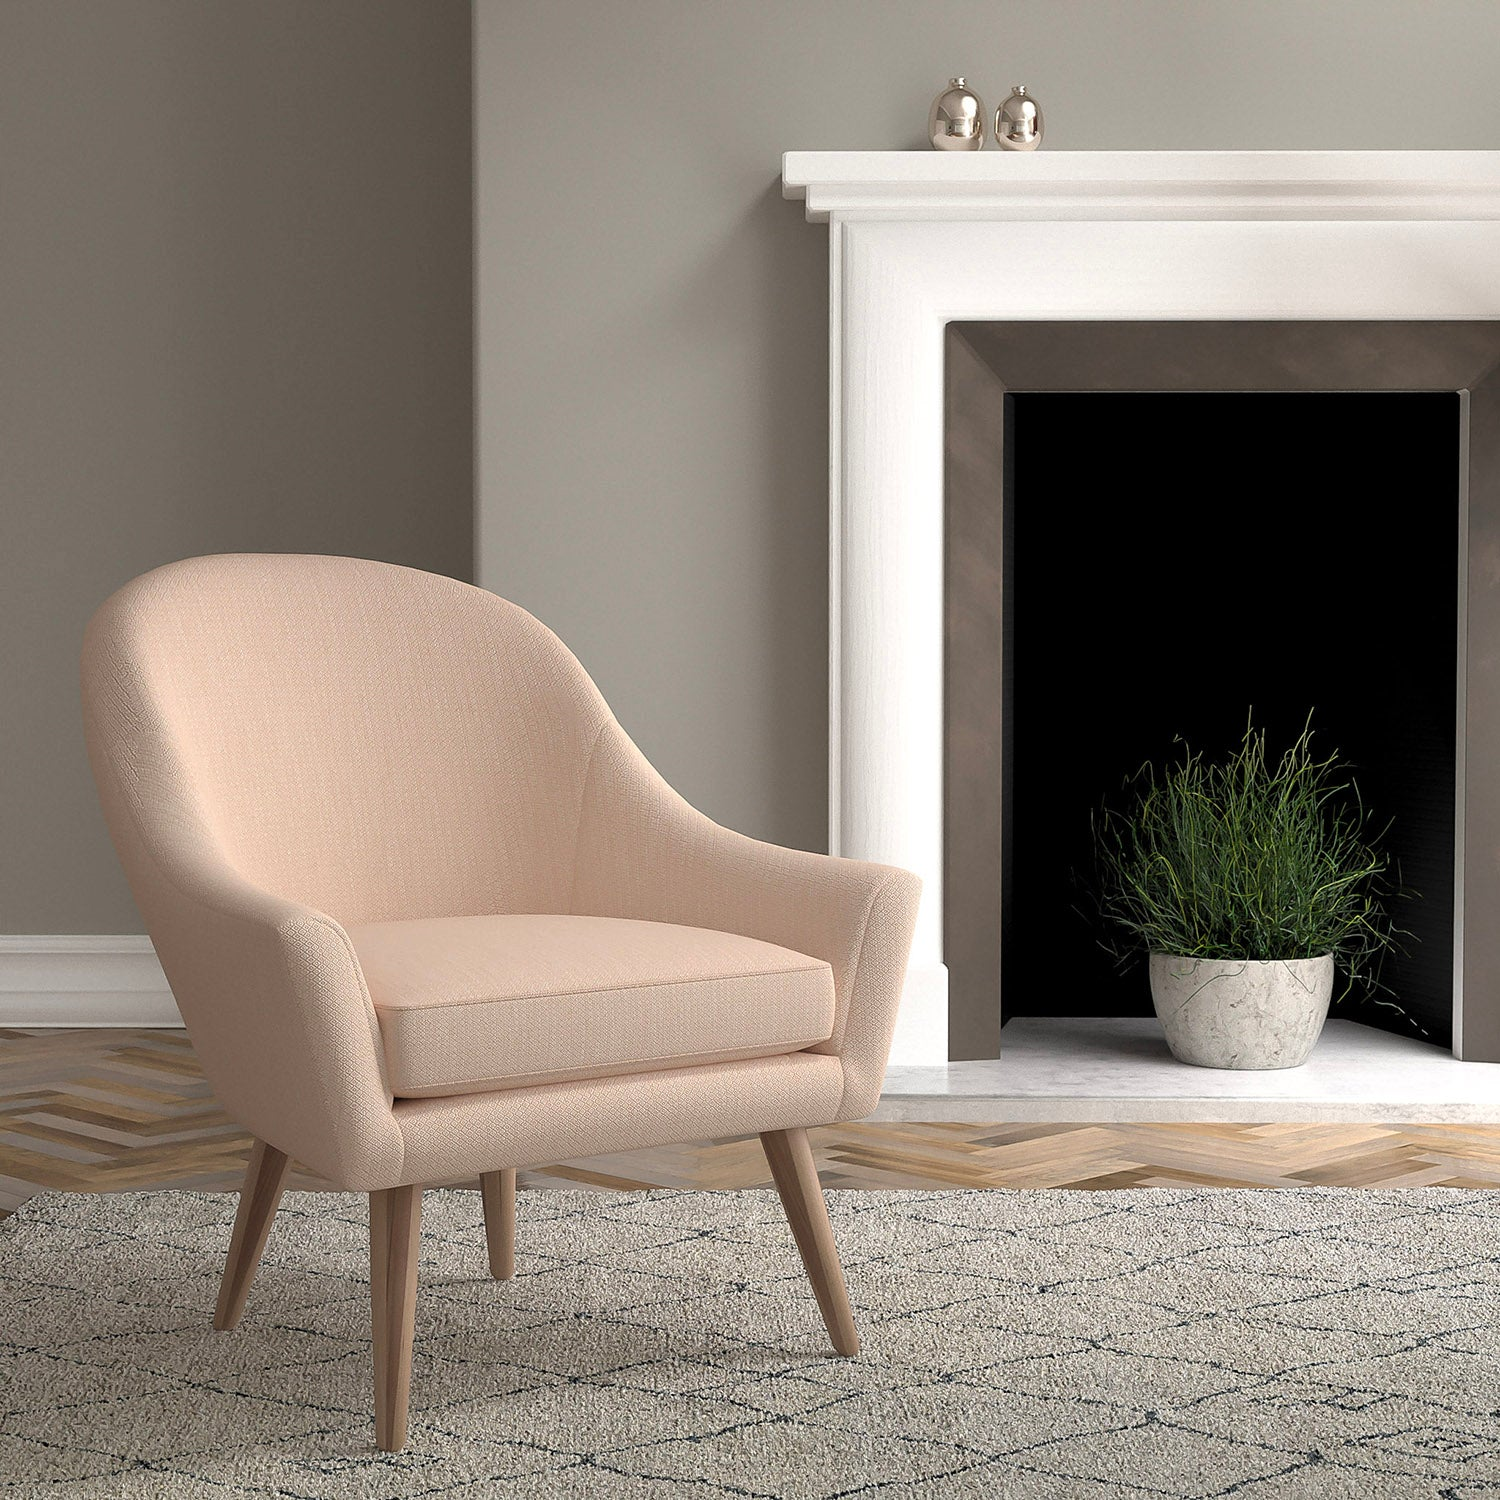 Chair in a blush pink and neutral upholstery fabric with a small diamond design and a stain resistant finish